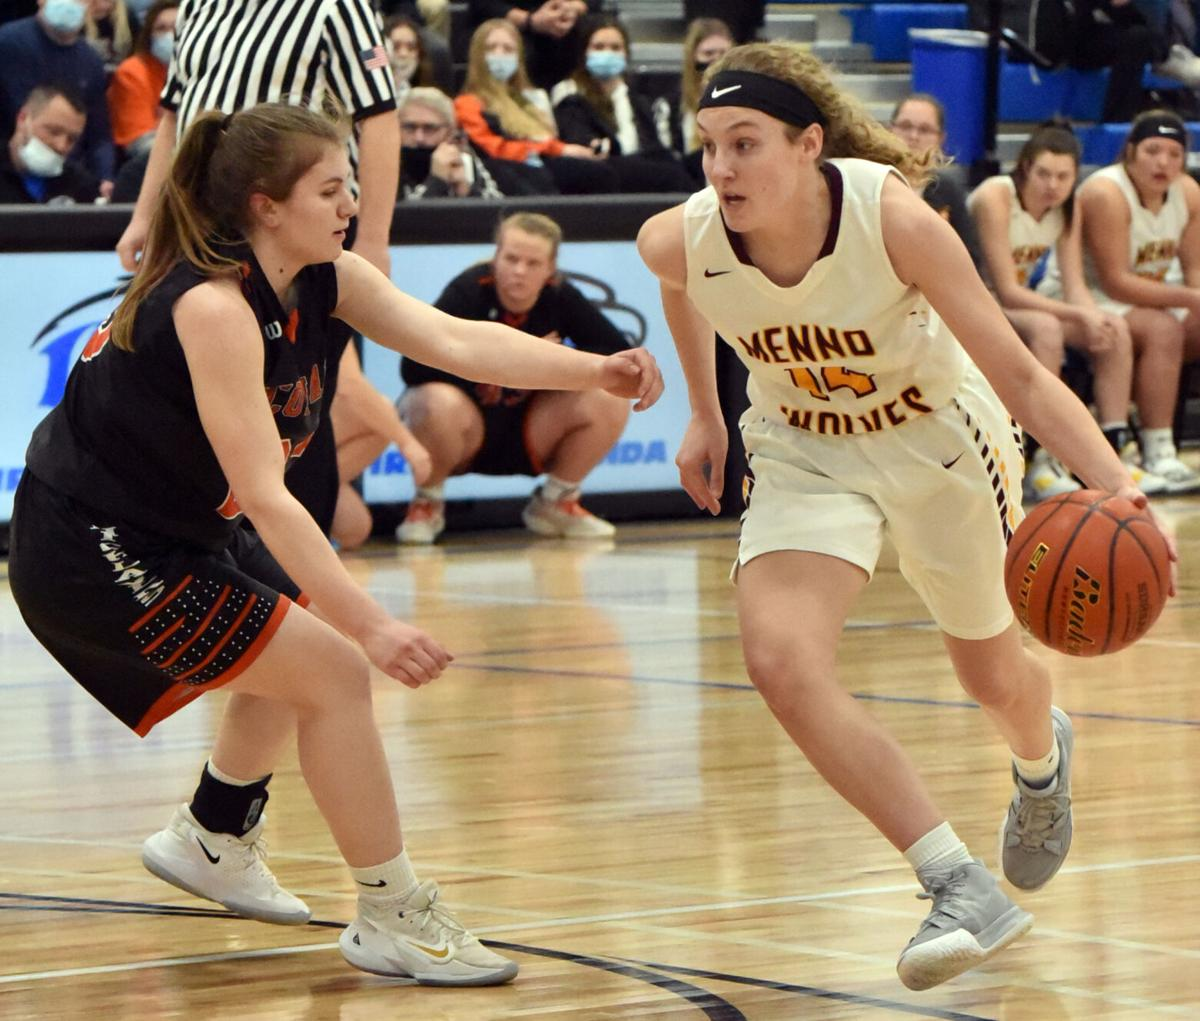 Morgan Edelman Named First Team All-State